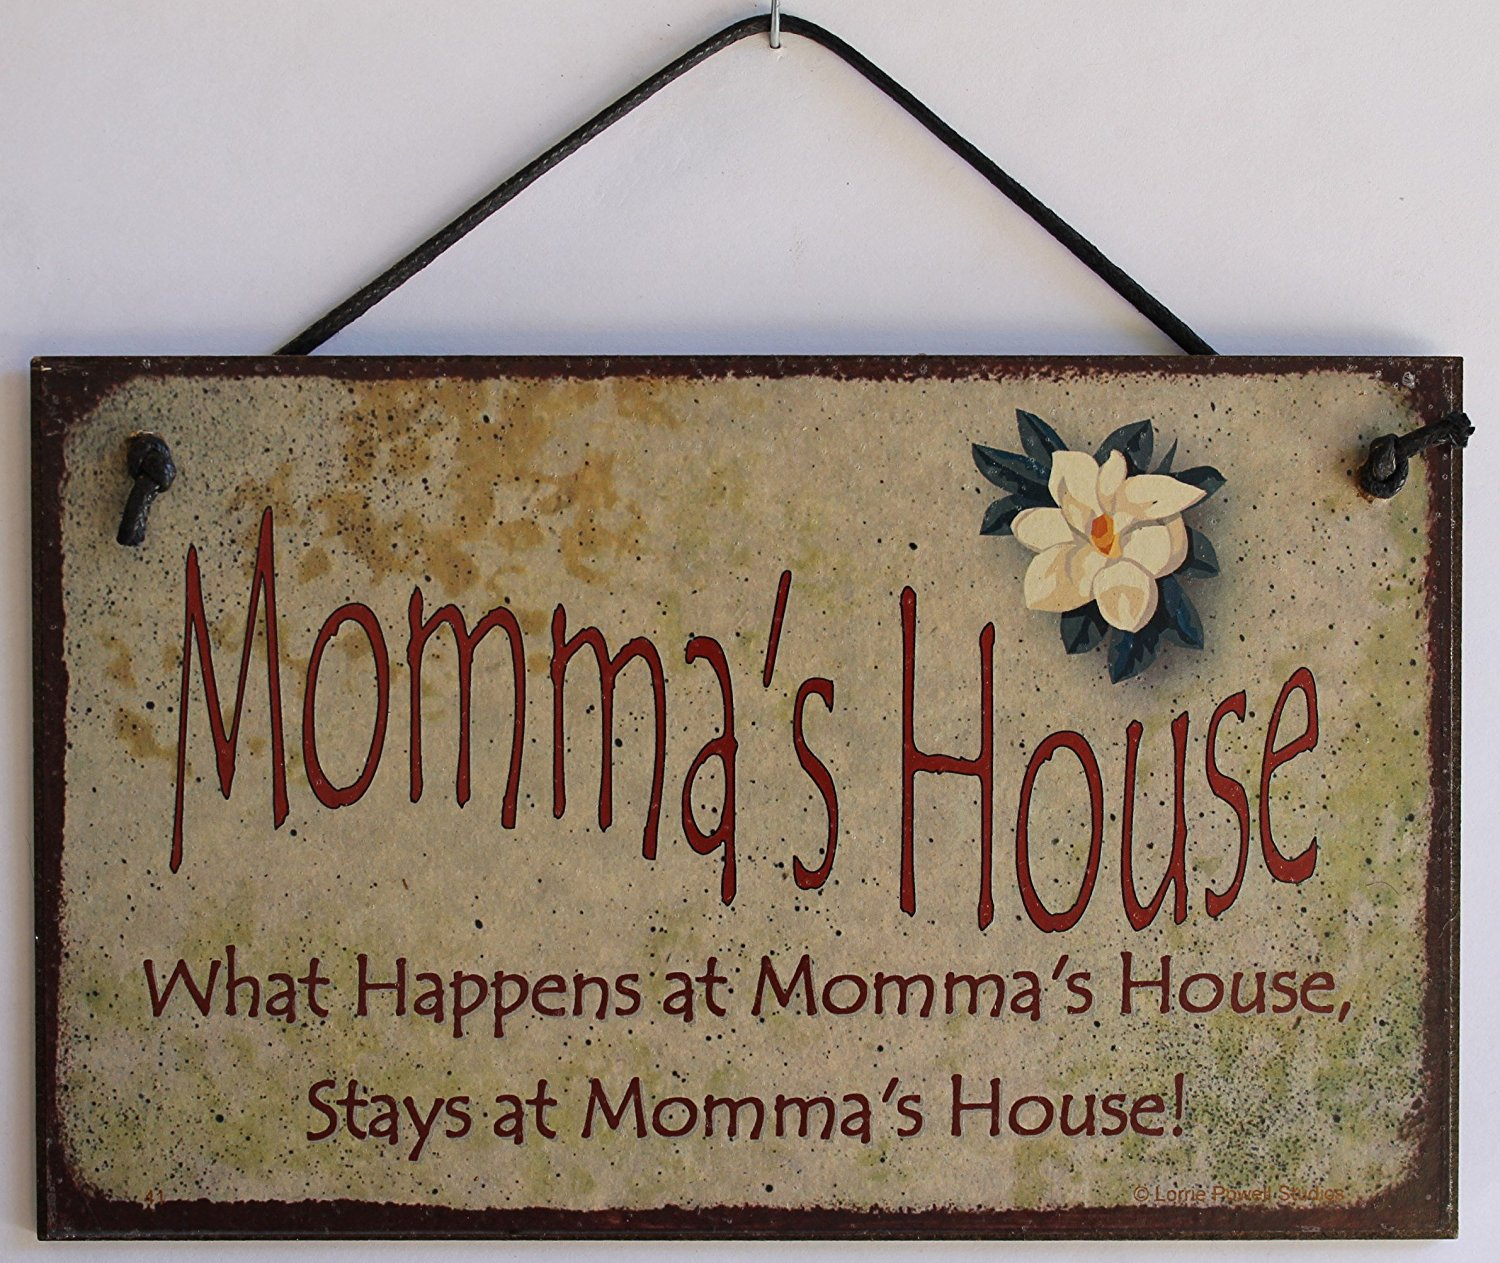 "5x8 Vintage Style Sign with Magnolia Saying, ""Momma's House What Happens at Momma's House, Stays at Momma's House!"" Decorative Fun Universal Household Signs from Egbert's Treasures"